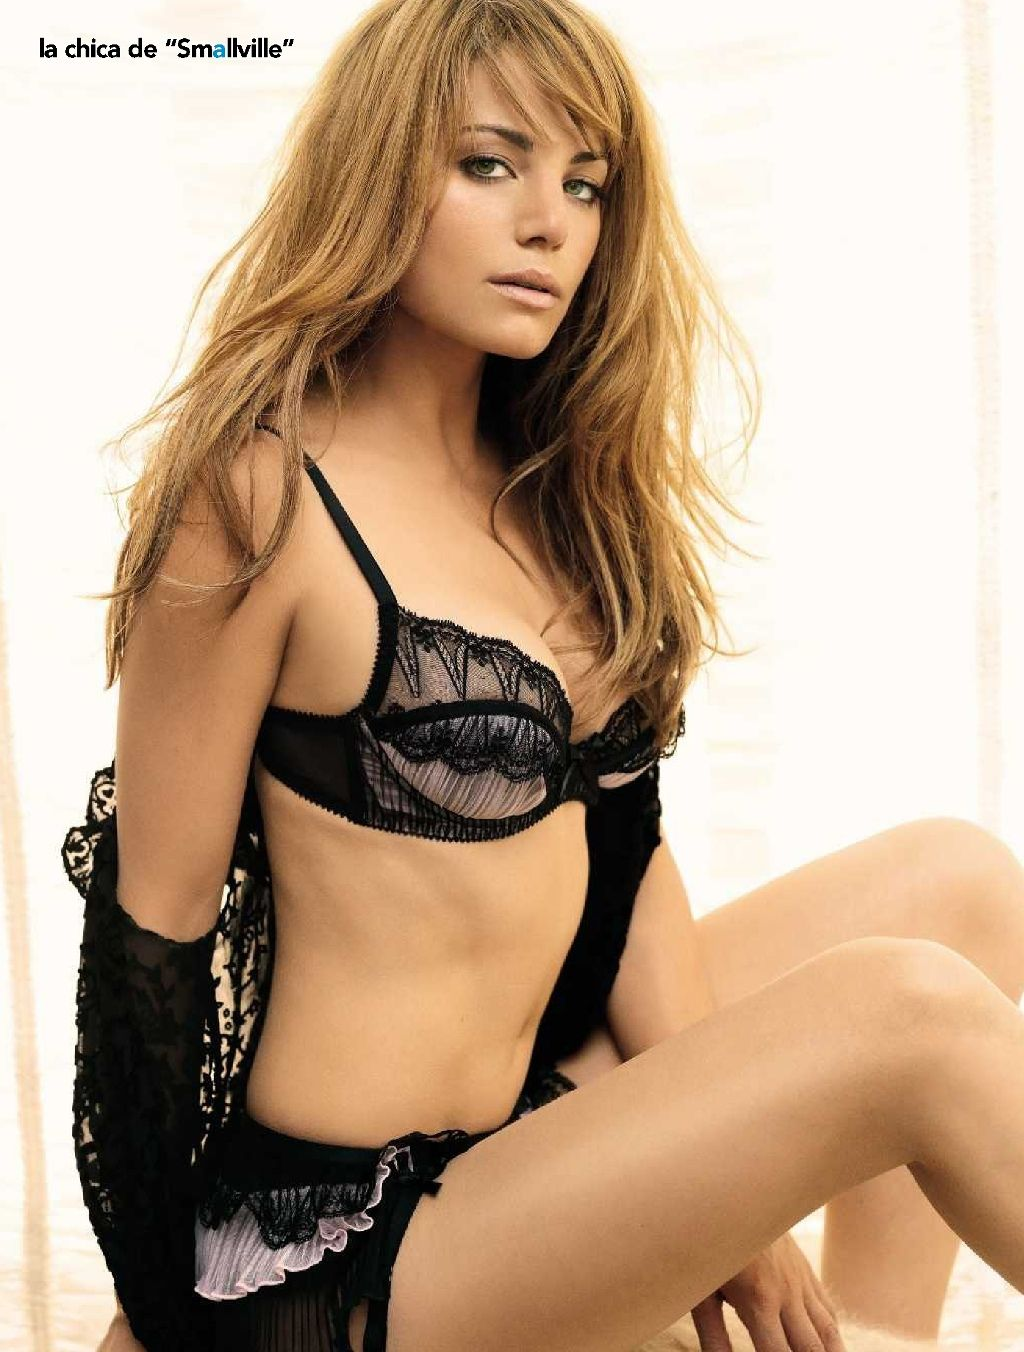 Erica Durance Hot Photo Yahoo Image Search Results